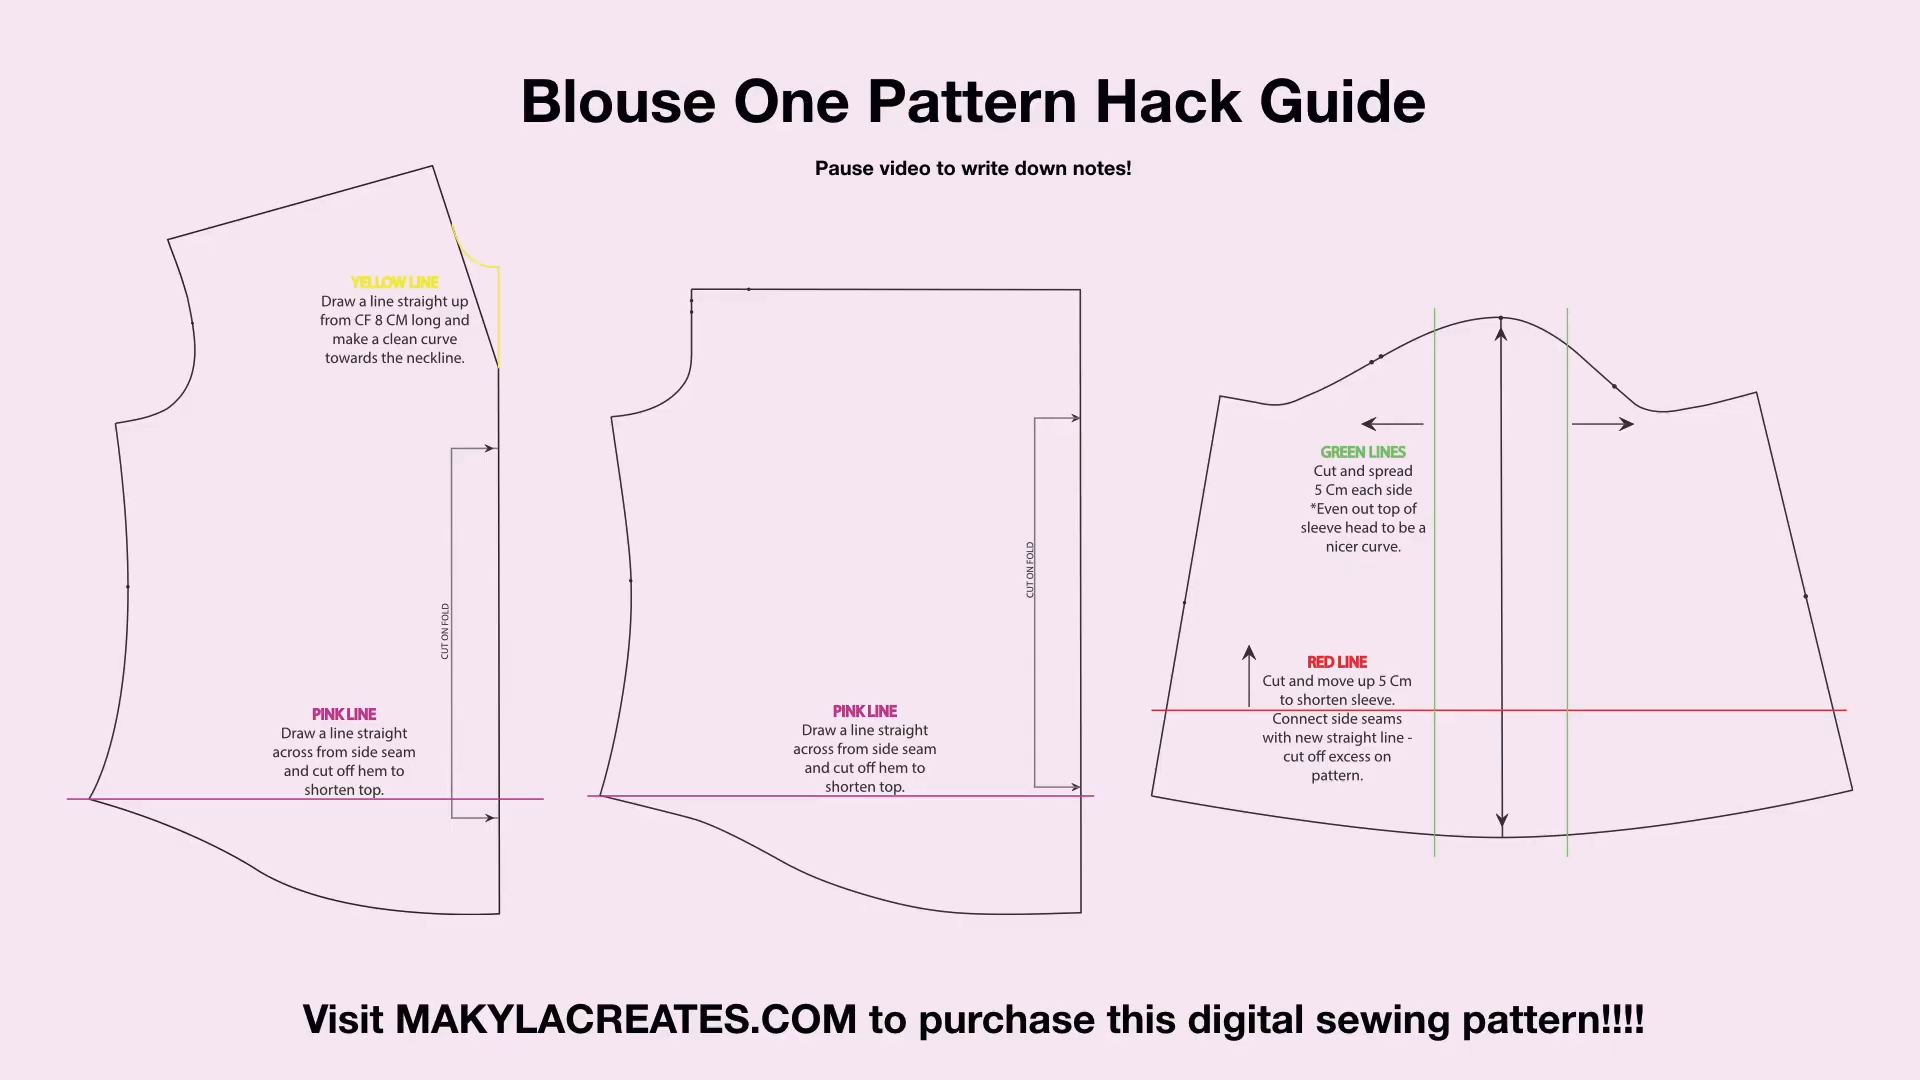 blouse one pattern hack guide